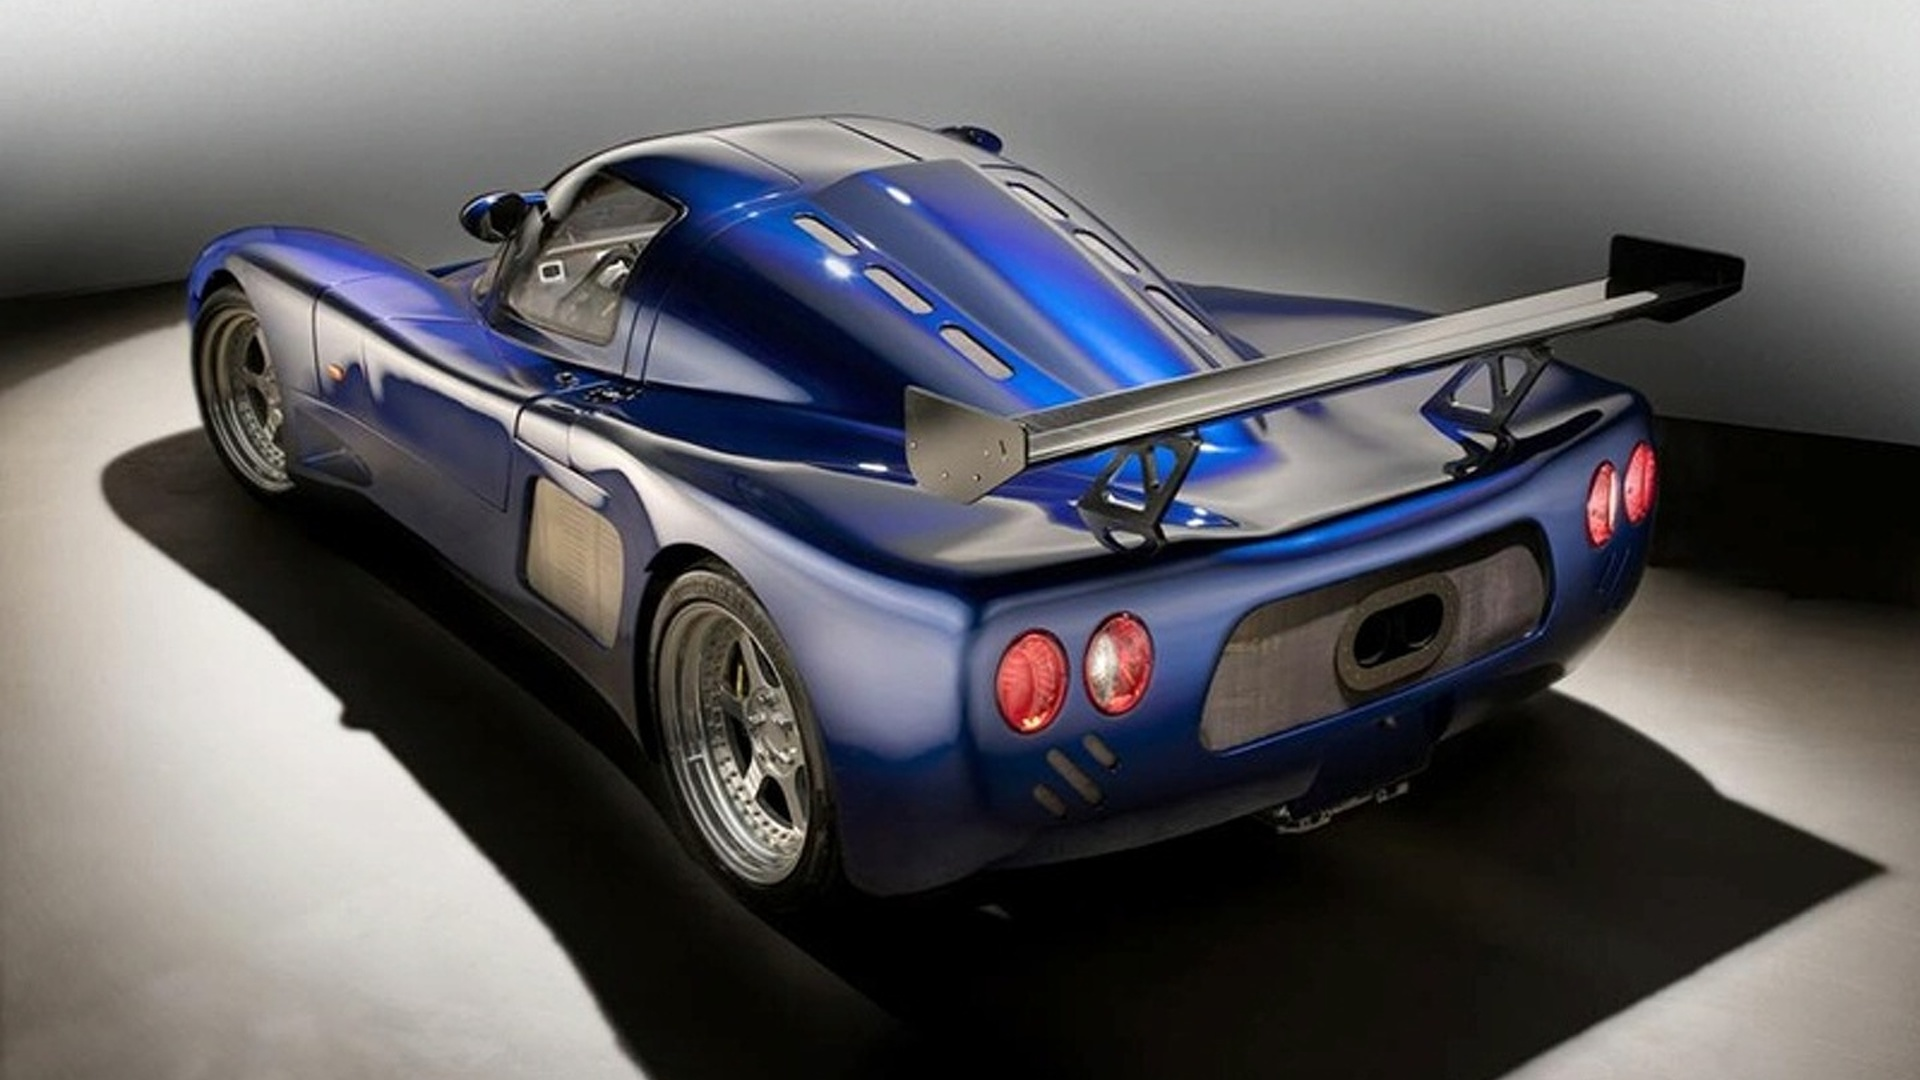 Maxximus G Force Based On Ultima Gtr Is World S Fastest Street